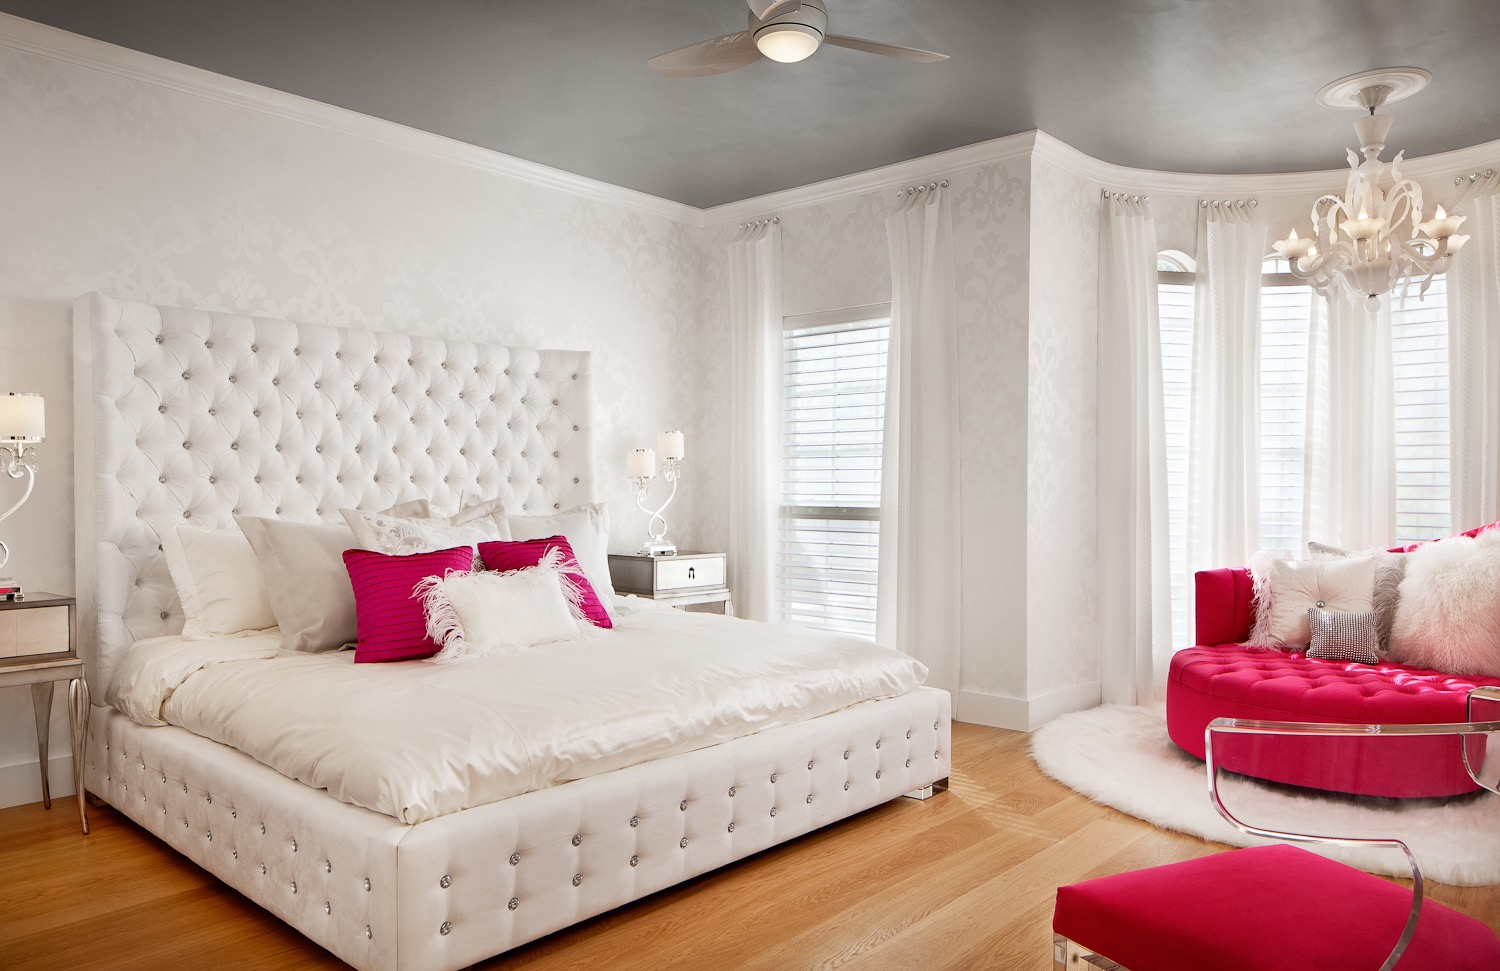 White Bedroom For Girl Fun Ideas For A Teenage Girl 39s Bedroom Decor 16535